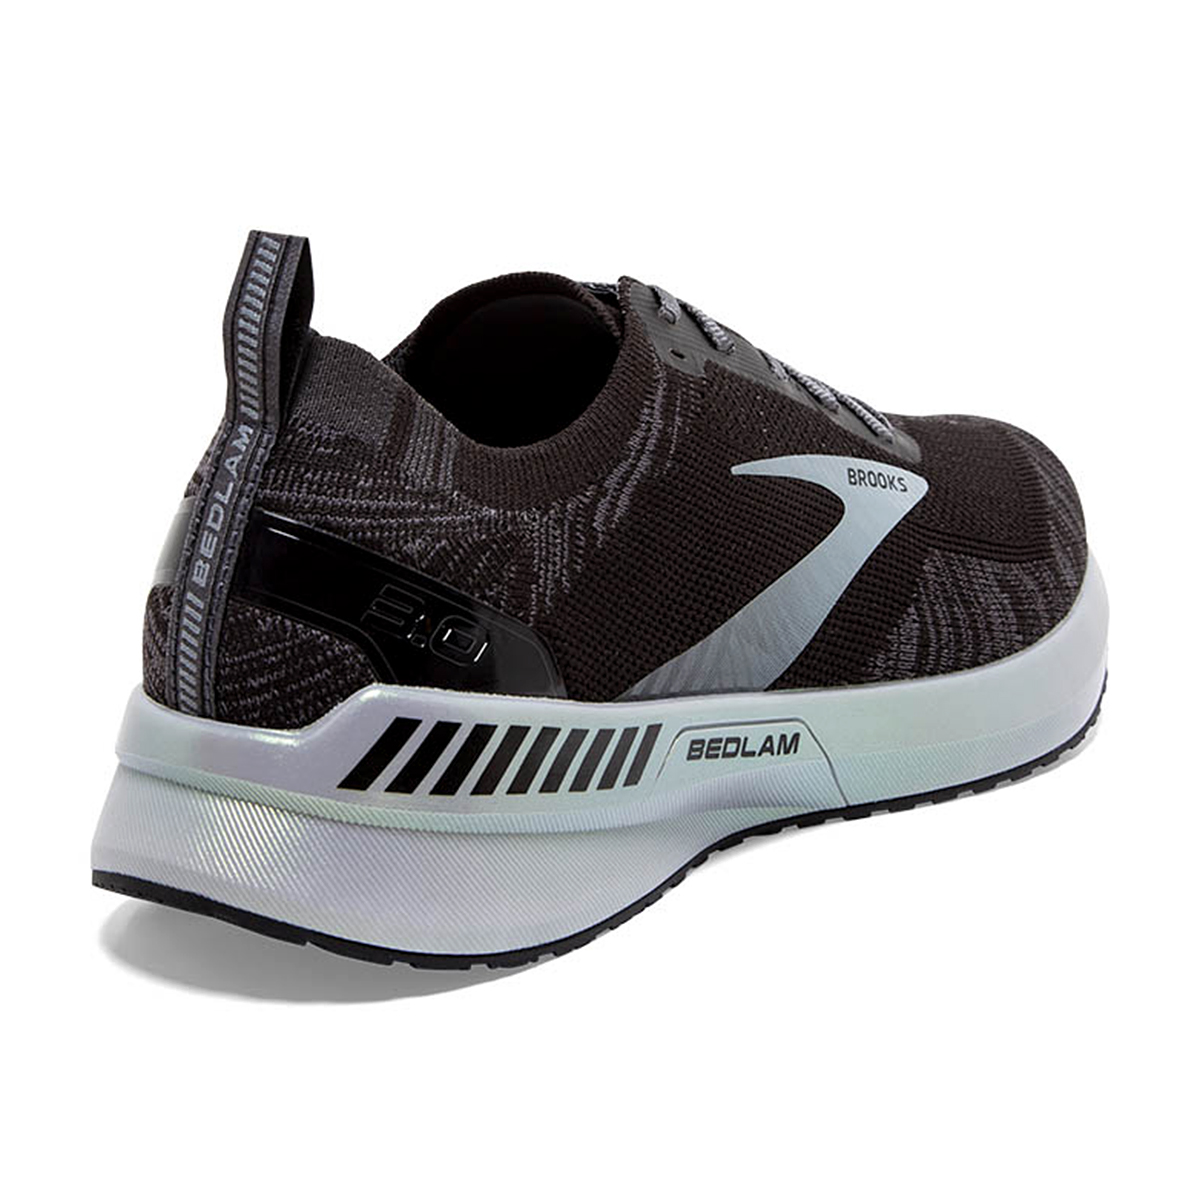 Men's Brooks Bedlam 3 Running Shoe - Color: Black/Blackened - Size: 8.5 - Width: Regular, Black/Blackened, large, image 4